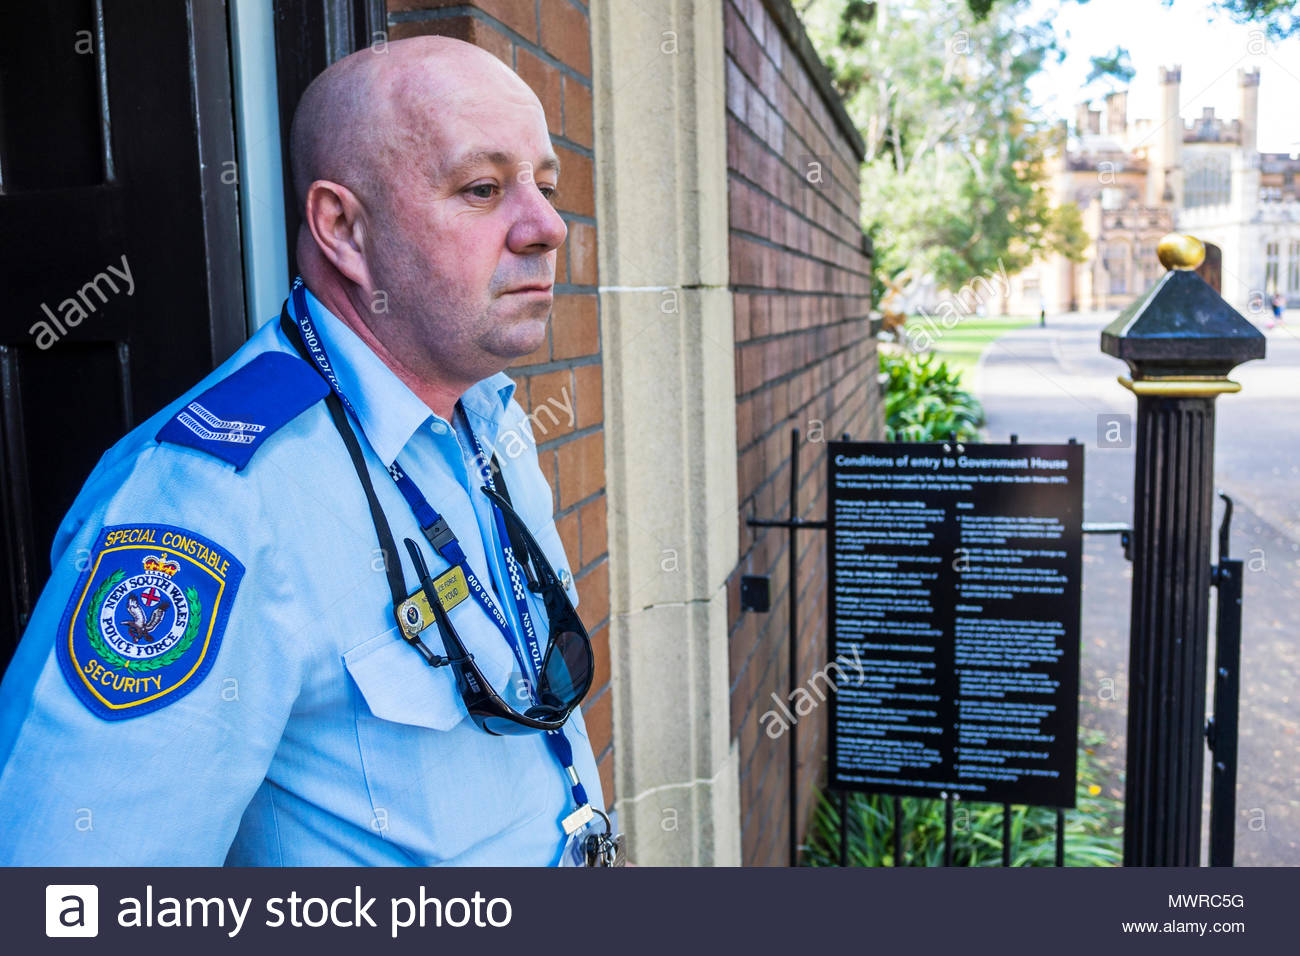 Sydney Australia NSW New South Wales special constable police policeman security man job uniform - Stock Image